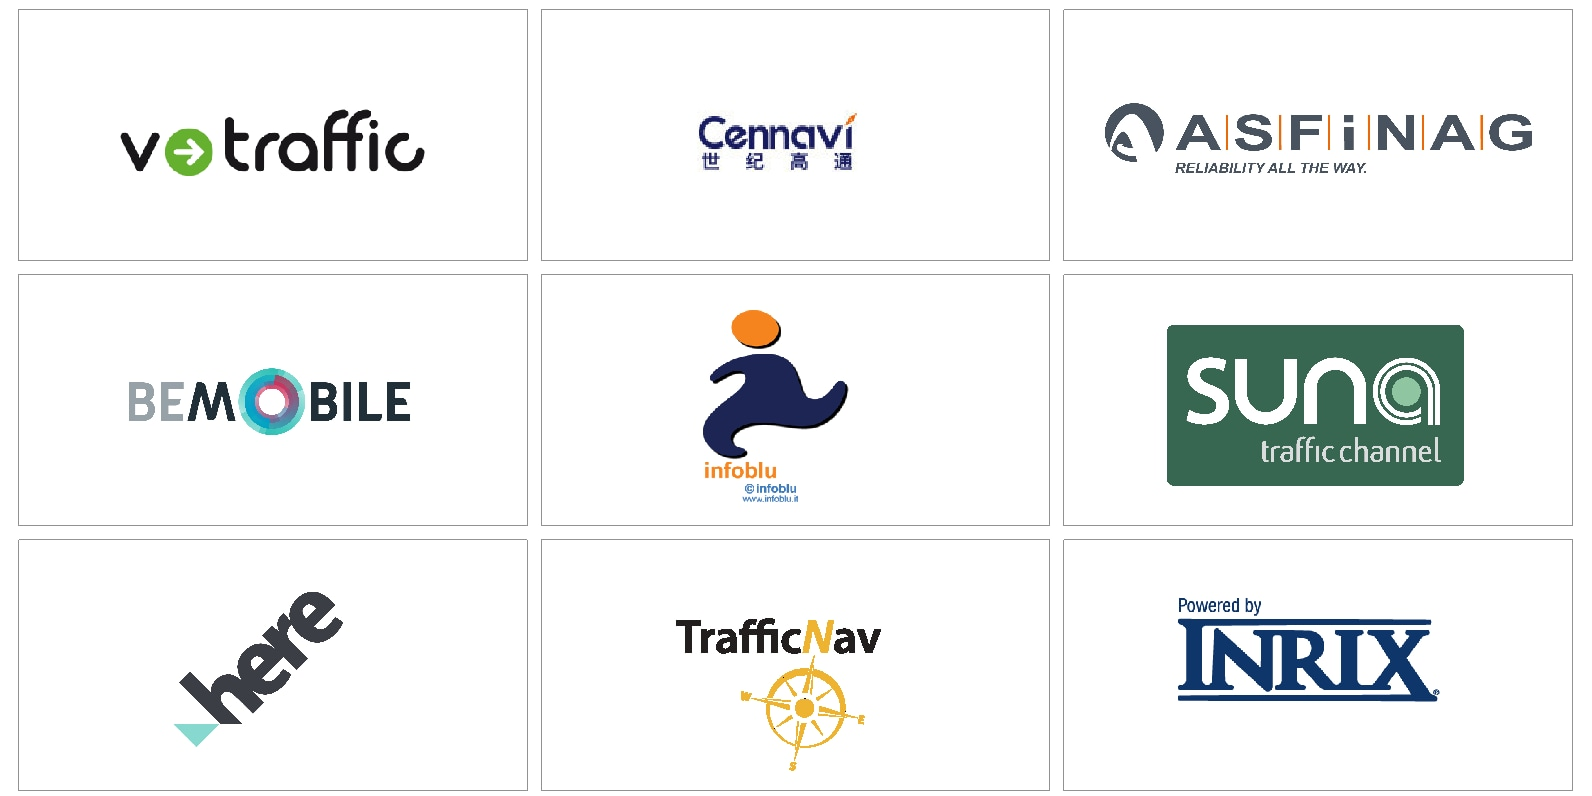 18w10 - P3/P4 - Support site - Traffic provider logotypes